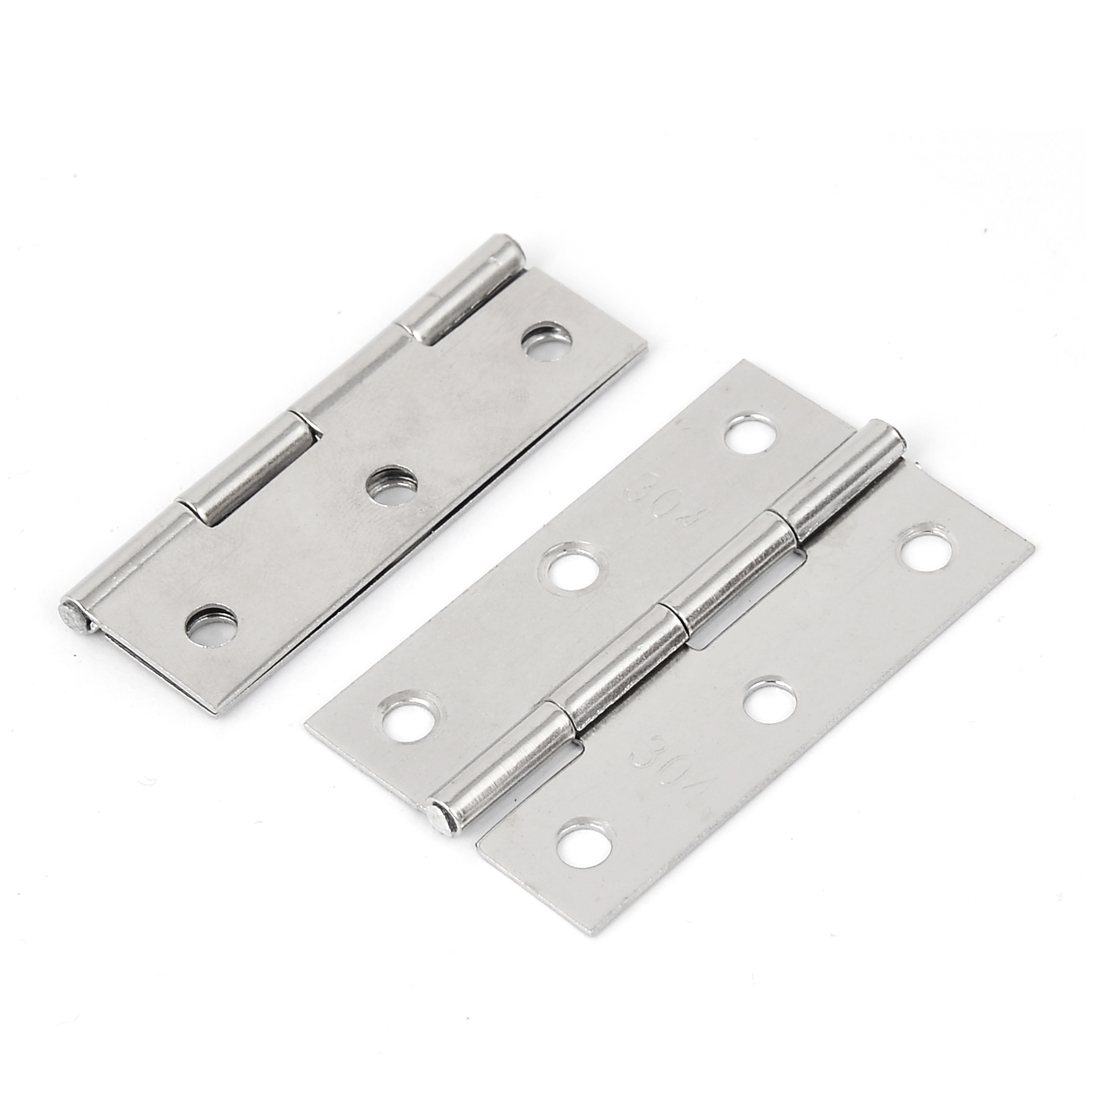 "Home Drawer 2.5"" long Stainless Steel Door Butt Hinges Hardware Silver Tone 2pcs"